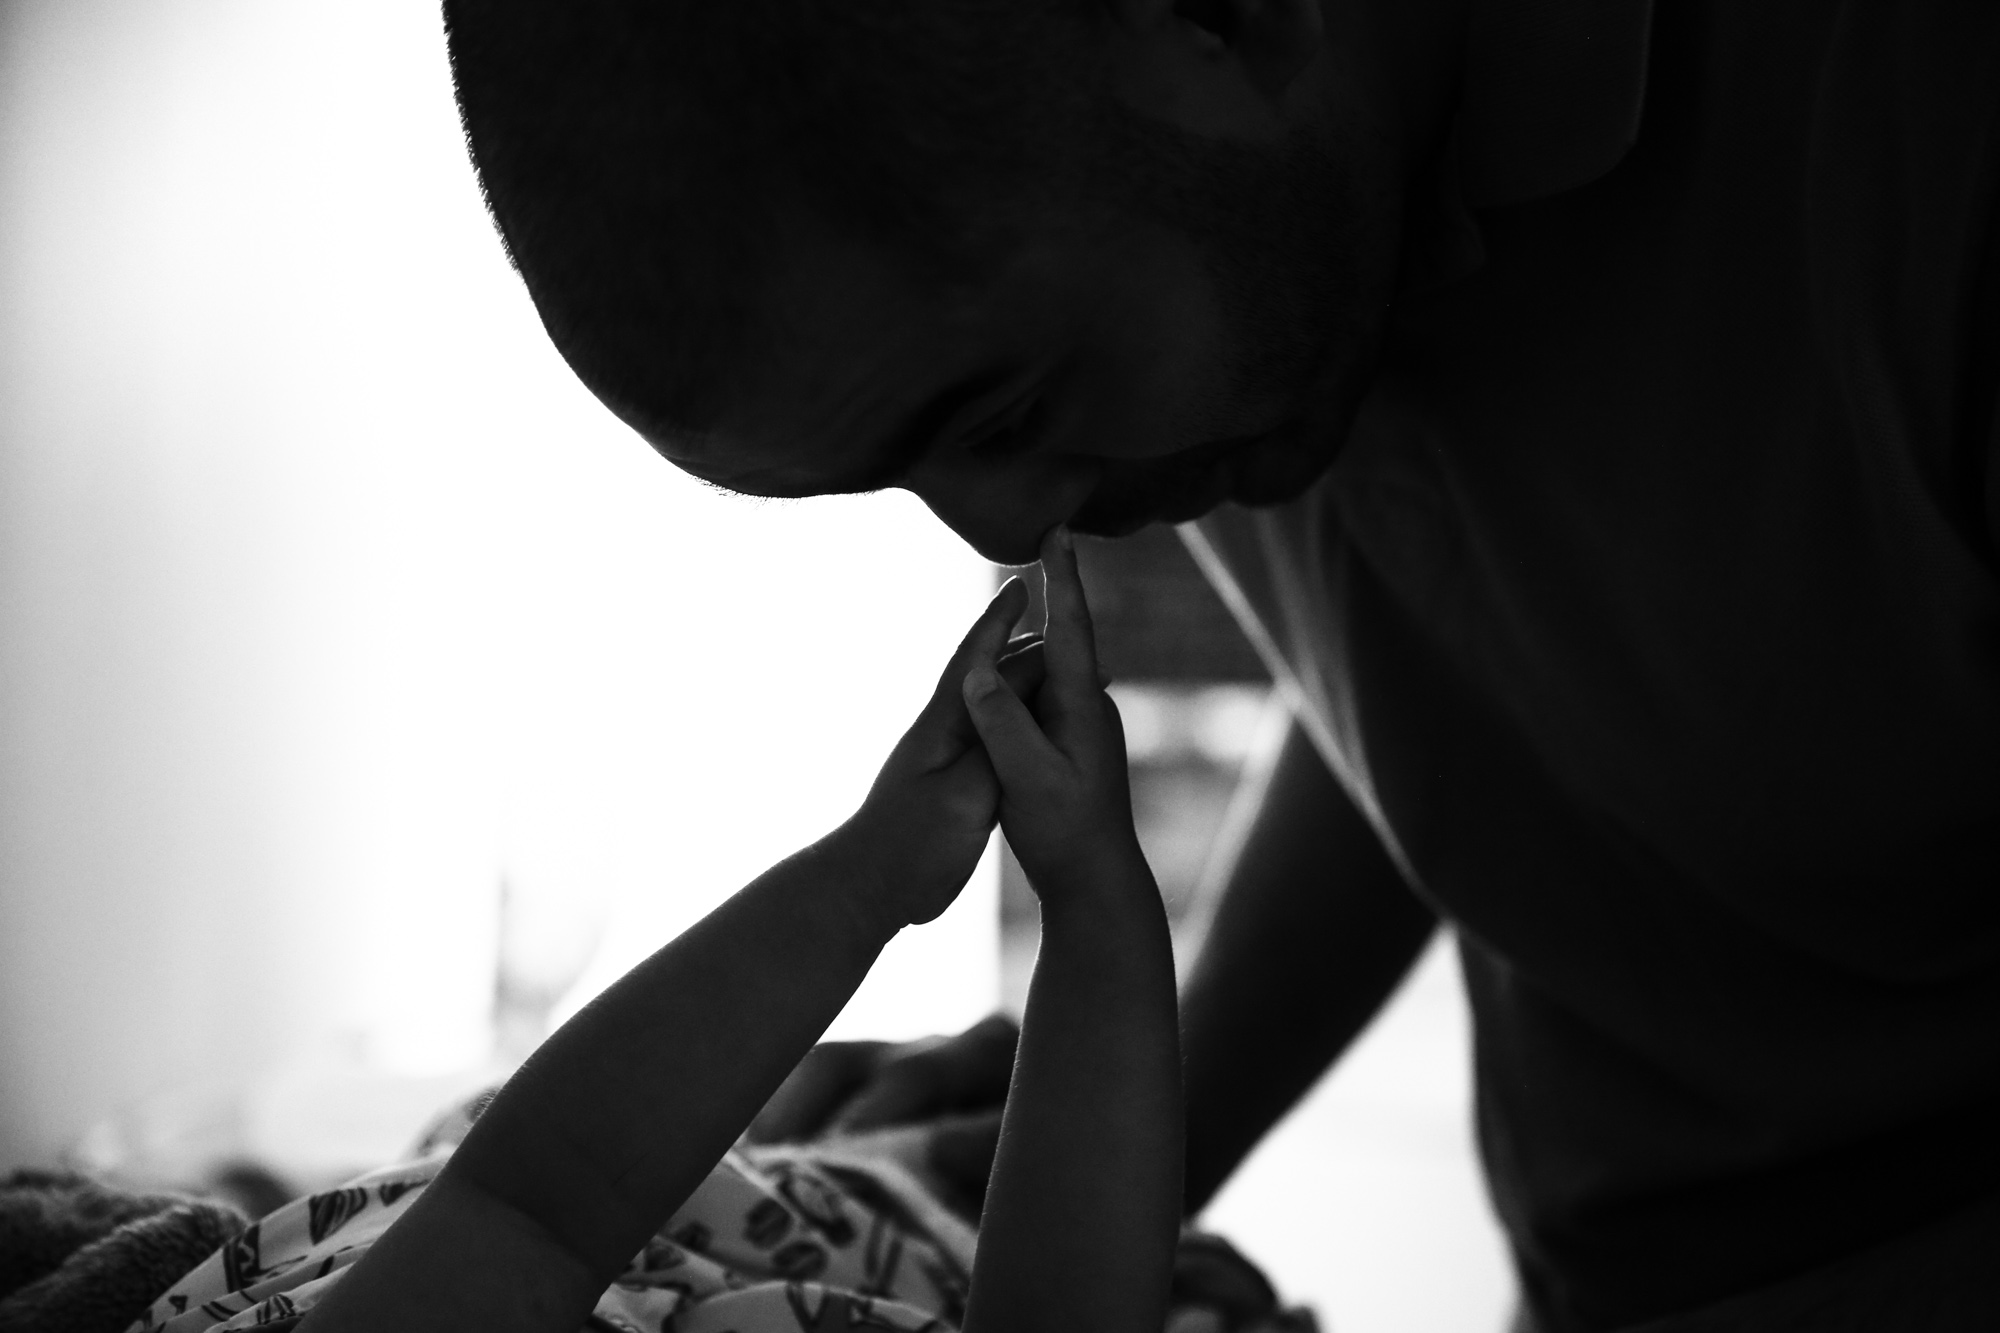 Girl's hands point and touch man's nose